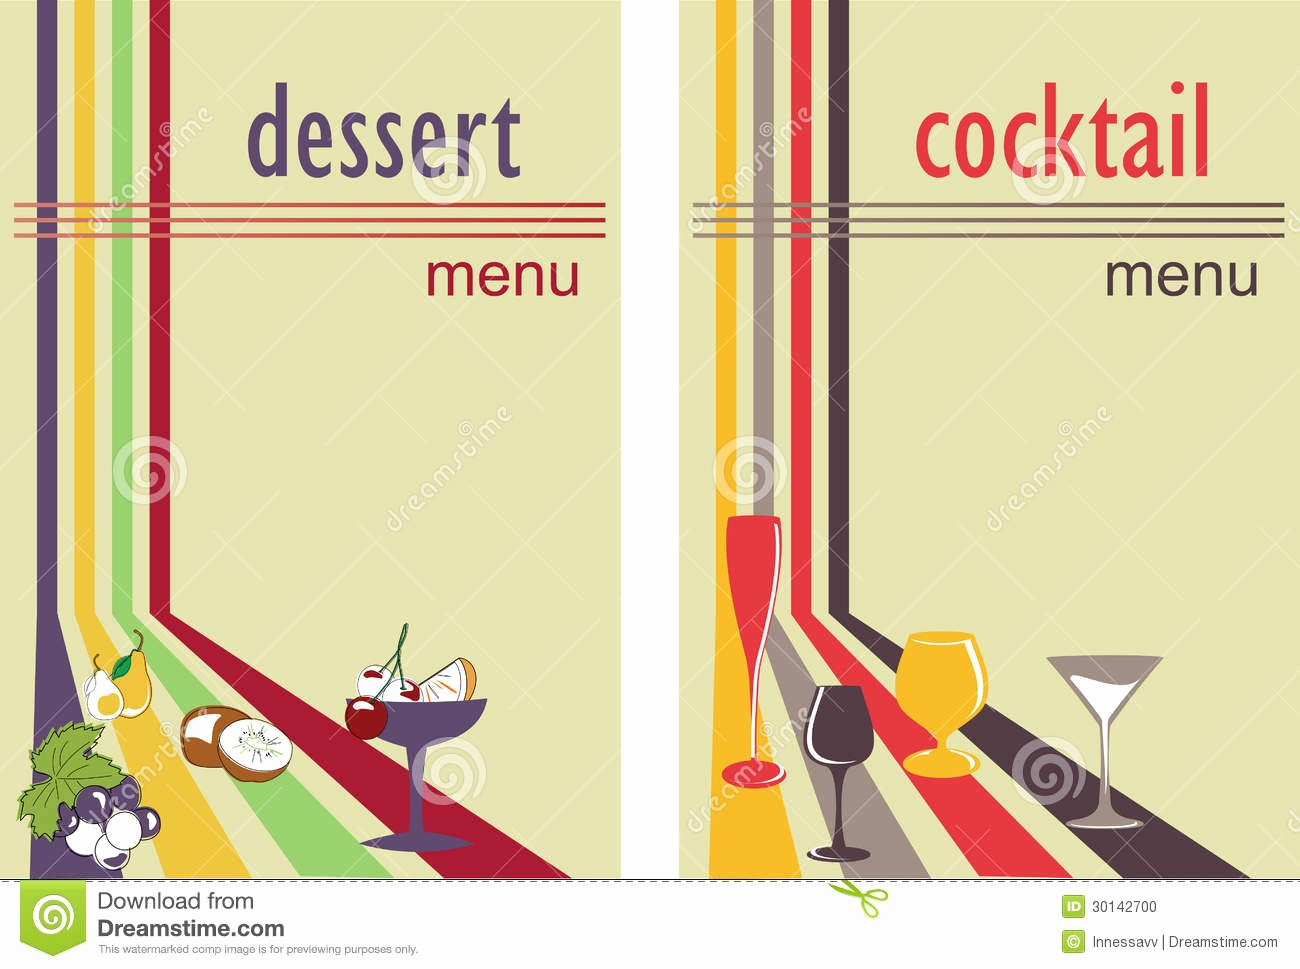 Cocktail Menu Template Free New Dessert and Cocktail Menu Stock Vector Illustration Of